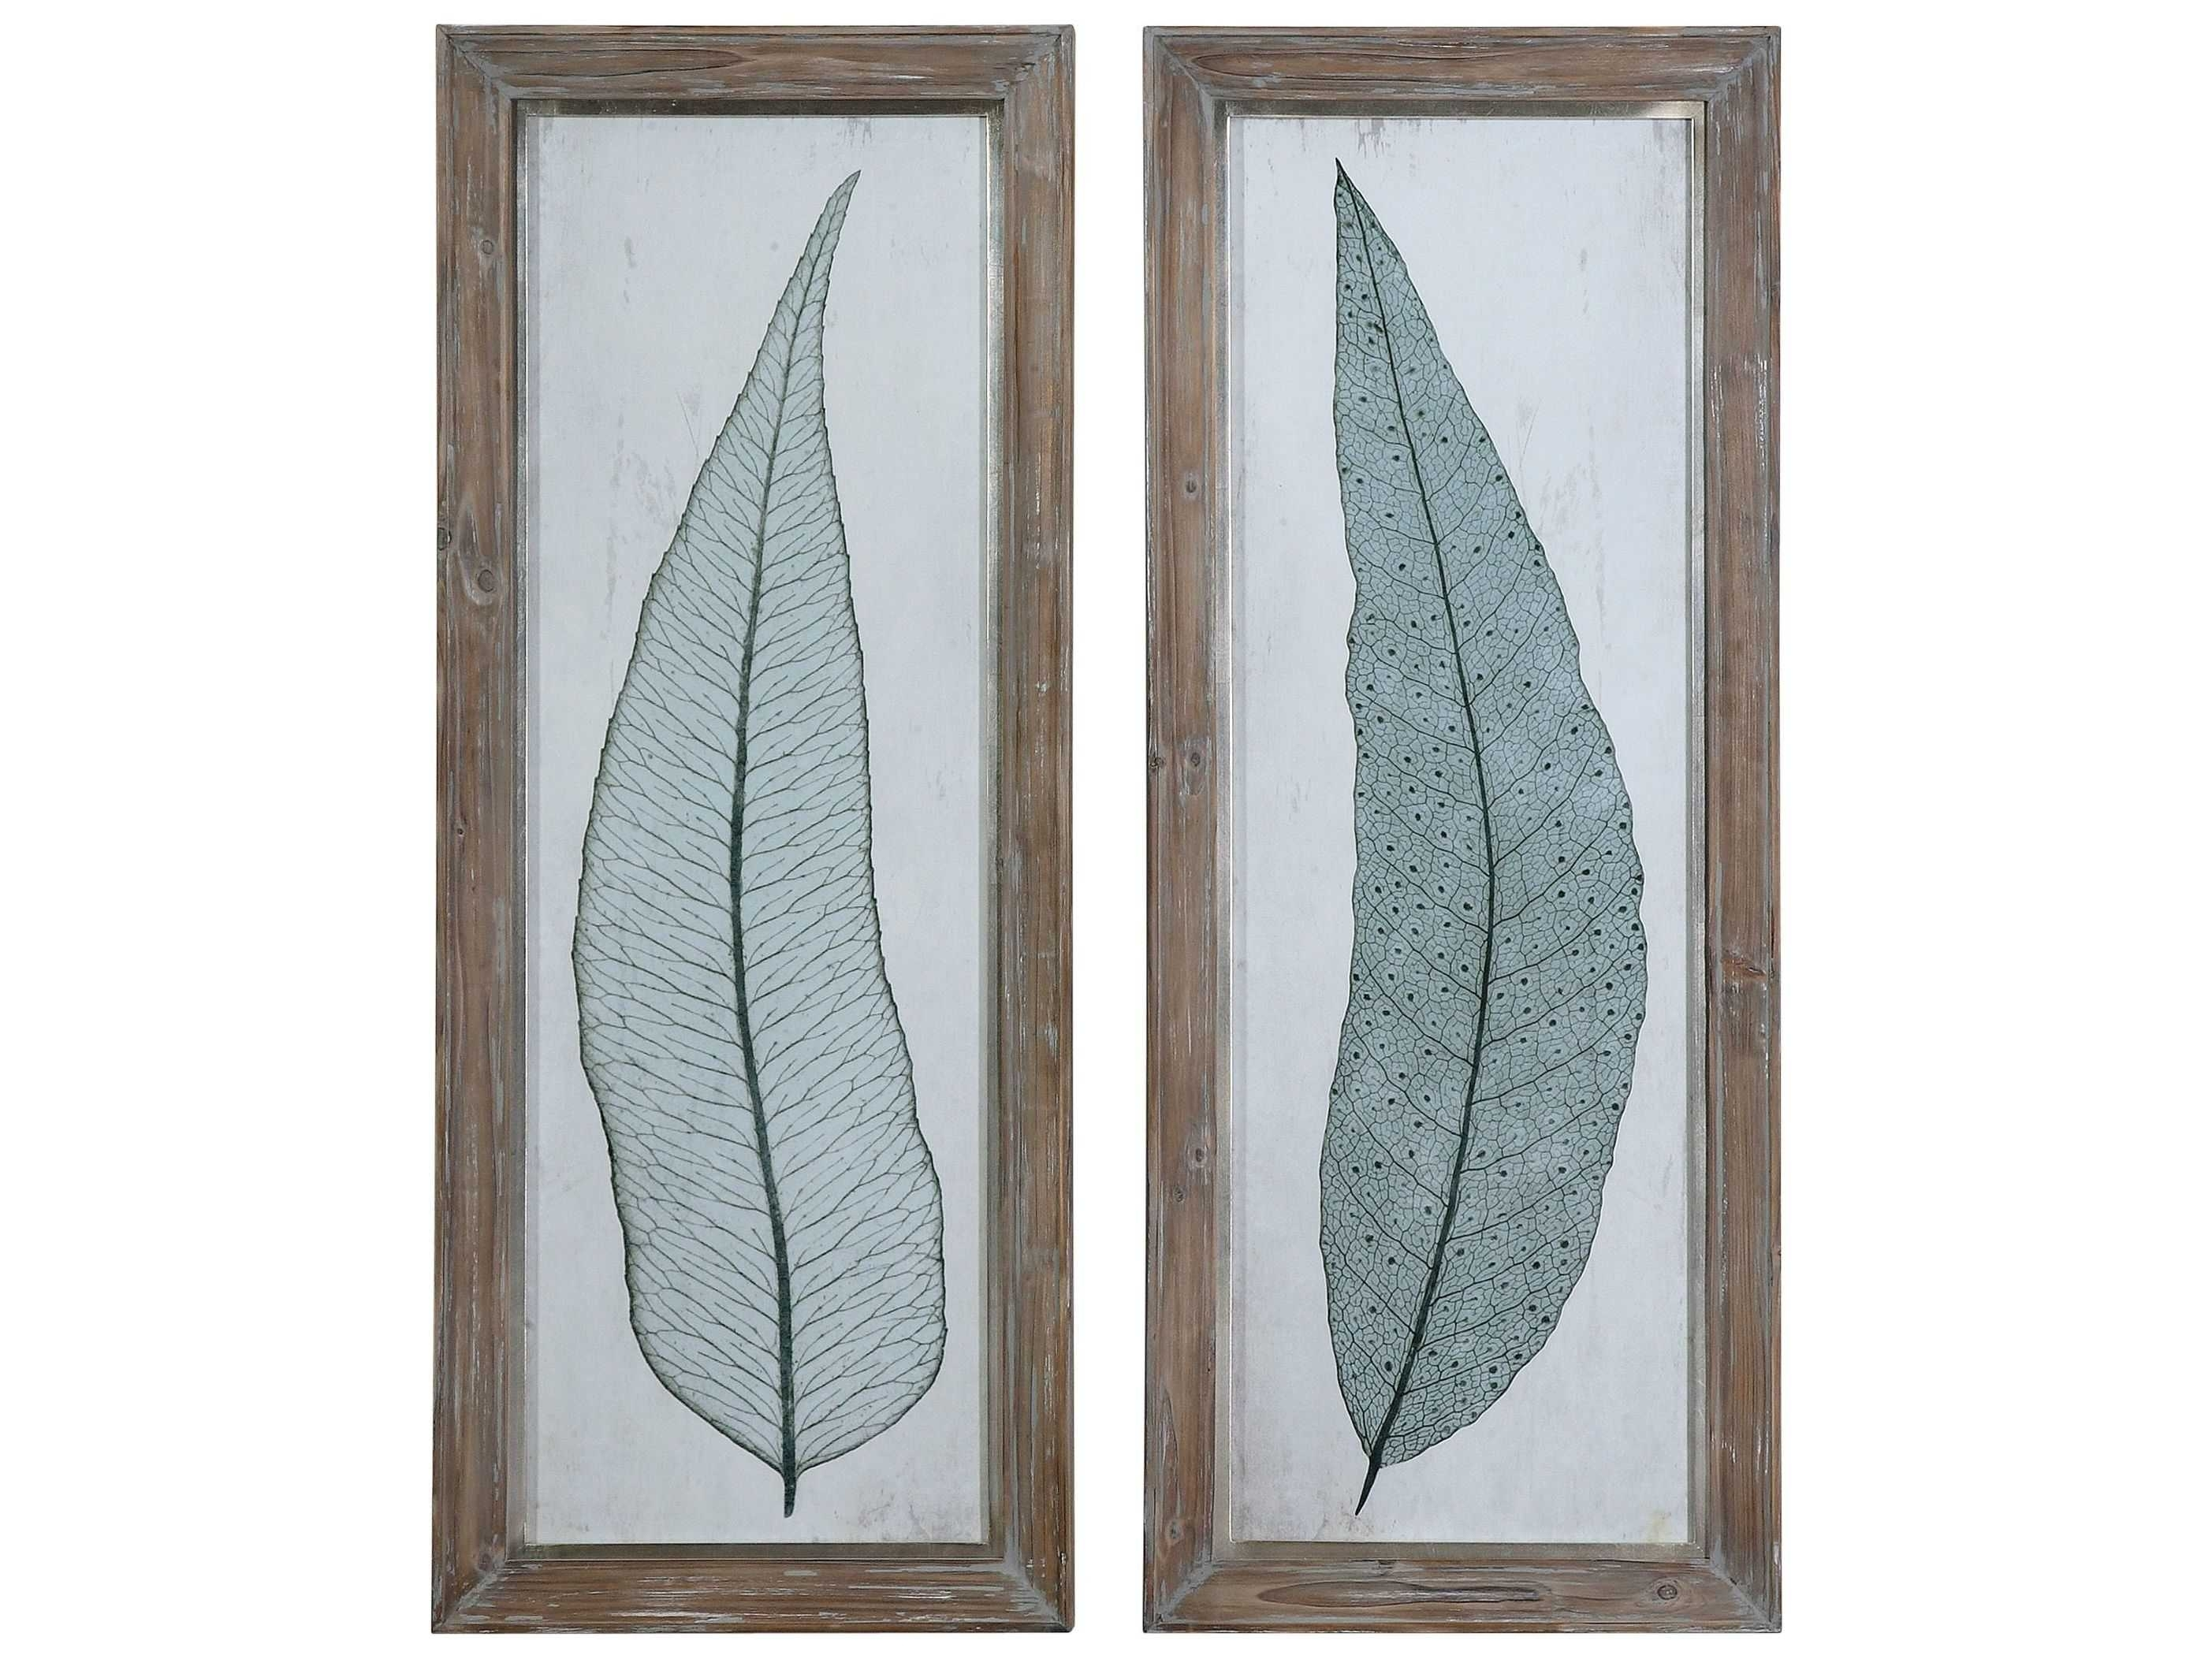 Uttermost Tall Leaves Framed Wall Art (2 Piece Set) | Ut41514 Intended For Set Of 2 Framed Wall Art (View 17 of 20)